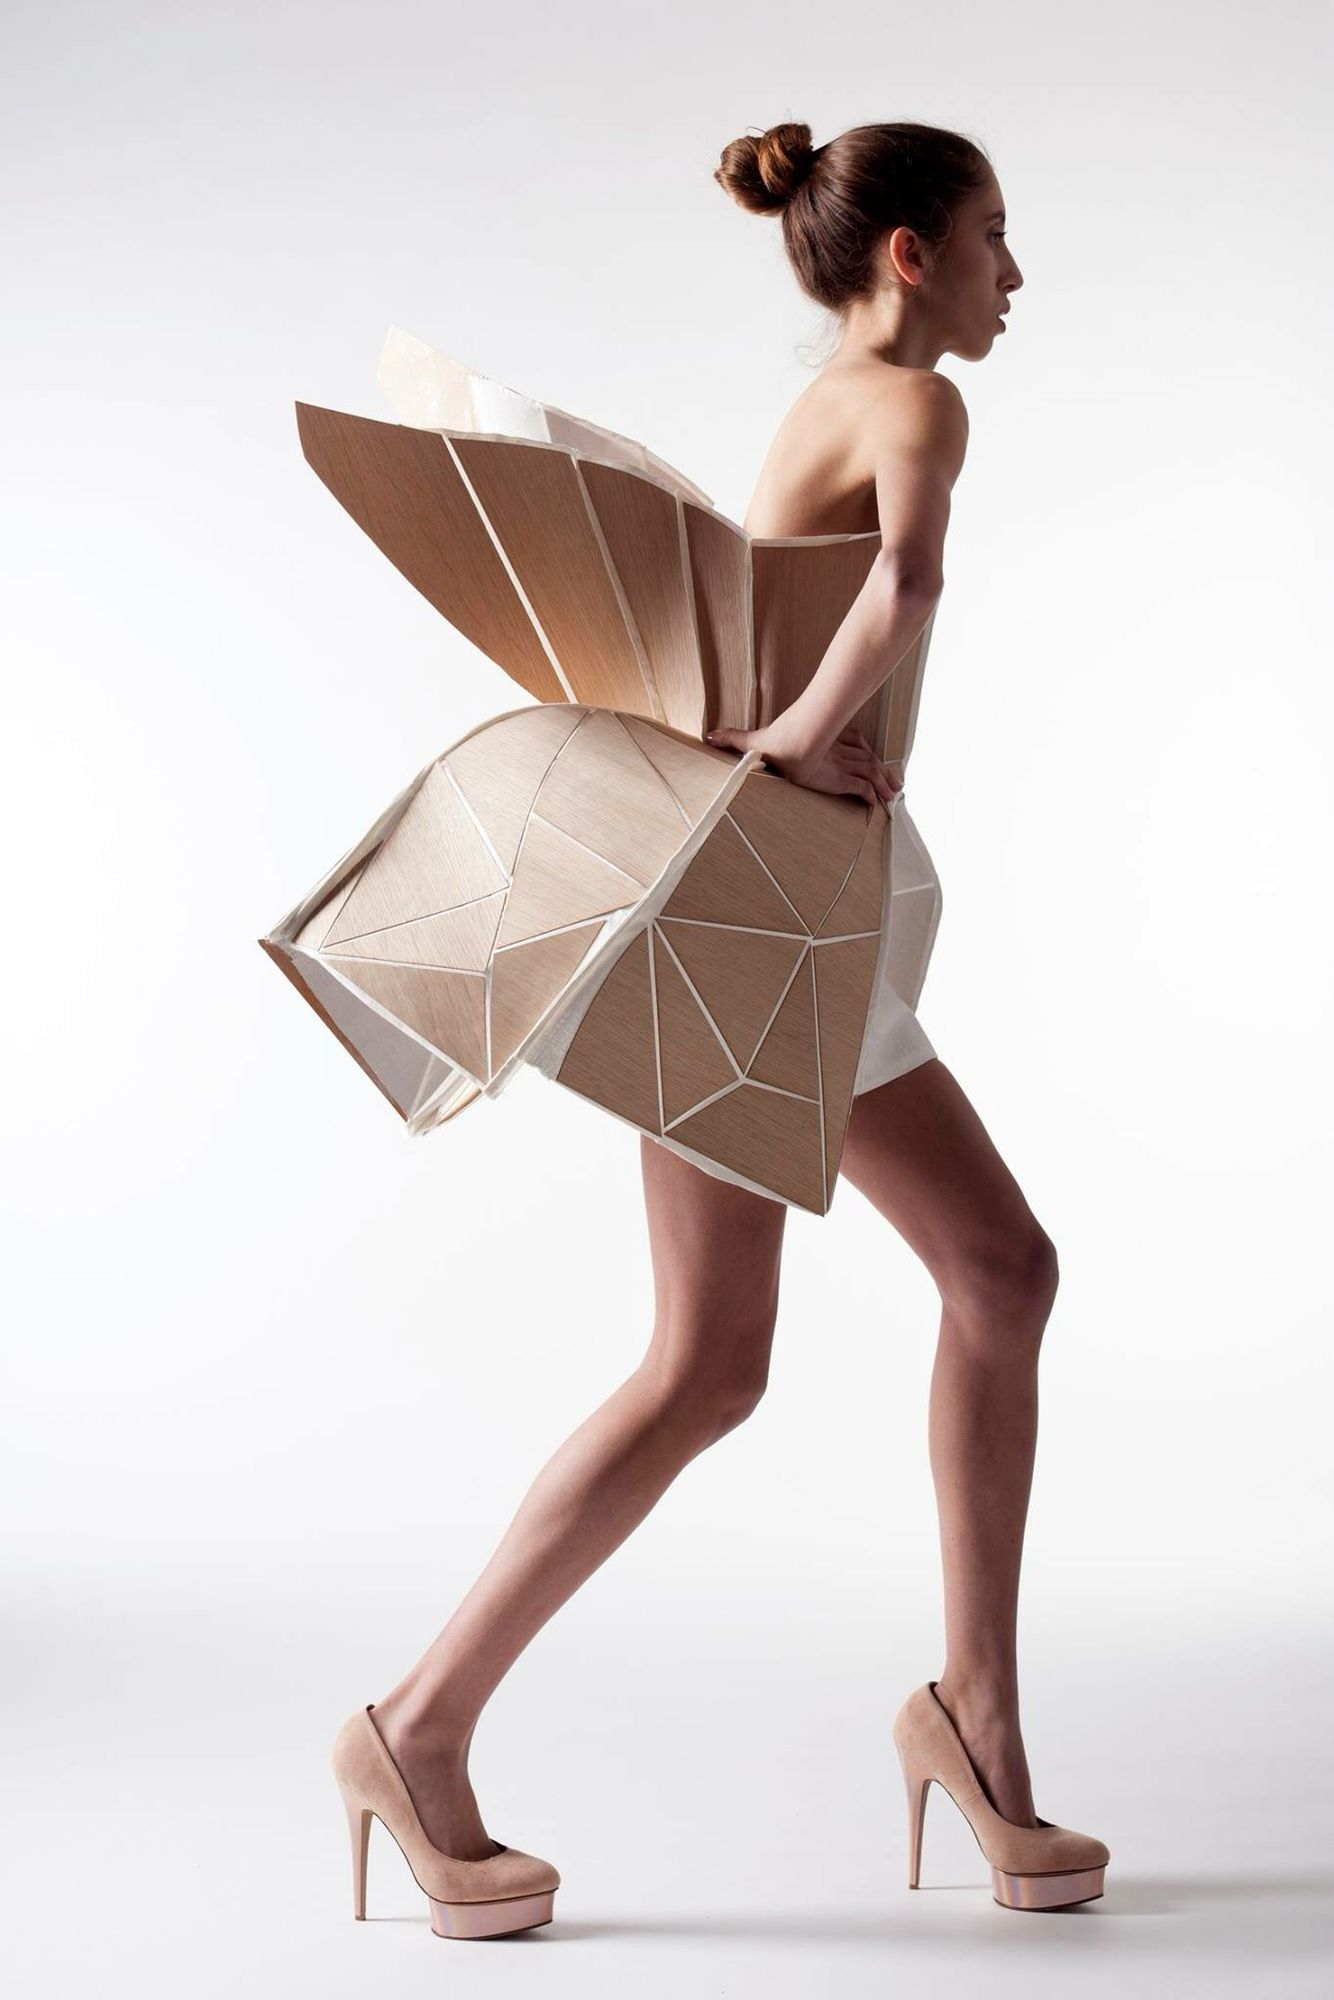 Pin By Samantha Alvarez On Creative Origami Fashion Conceptual Fashion Geometric Fashion